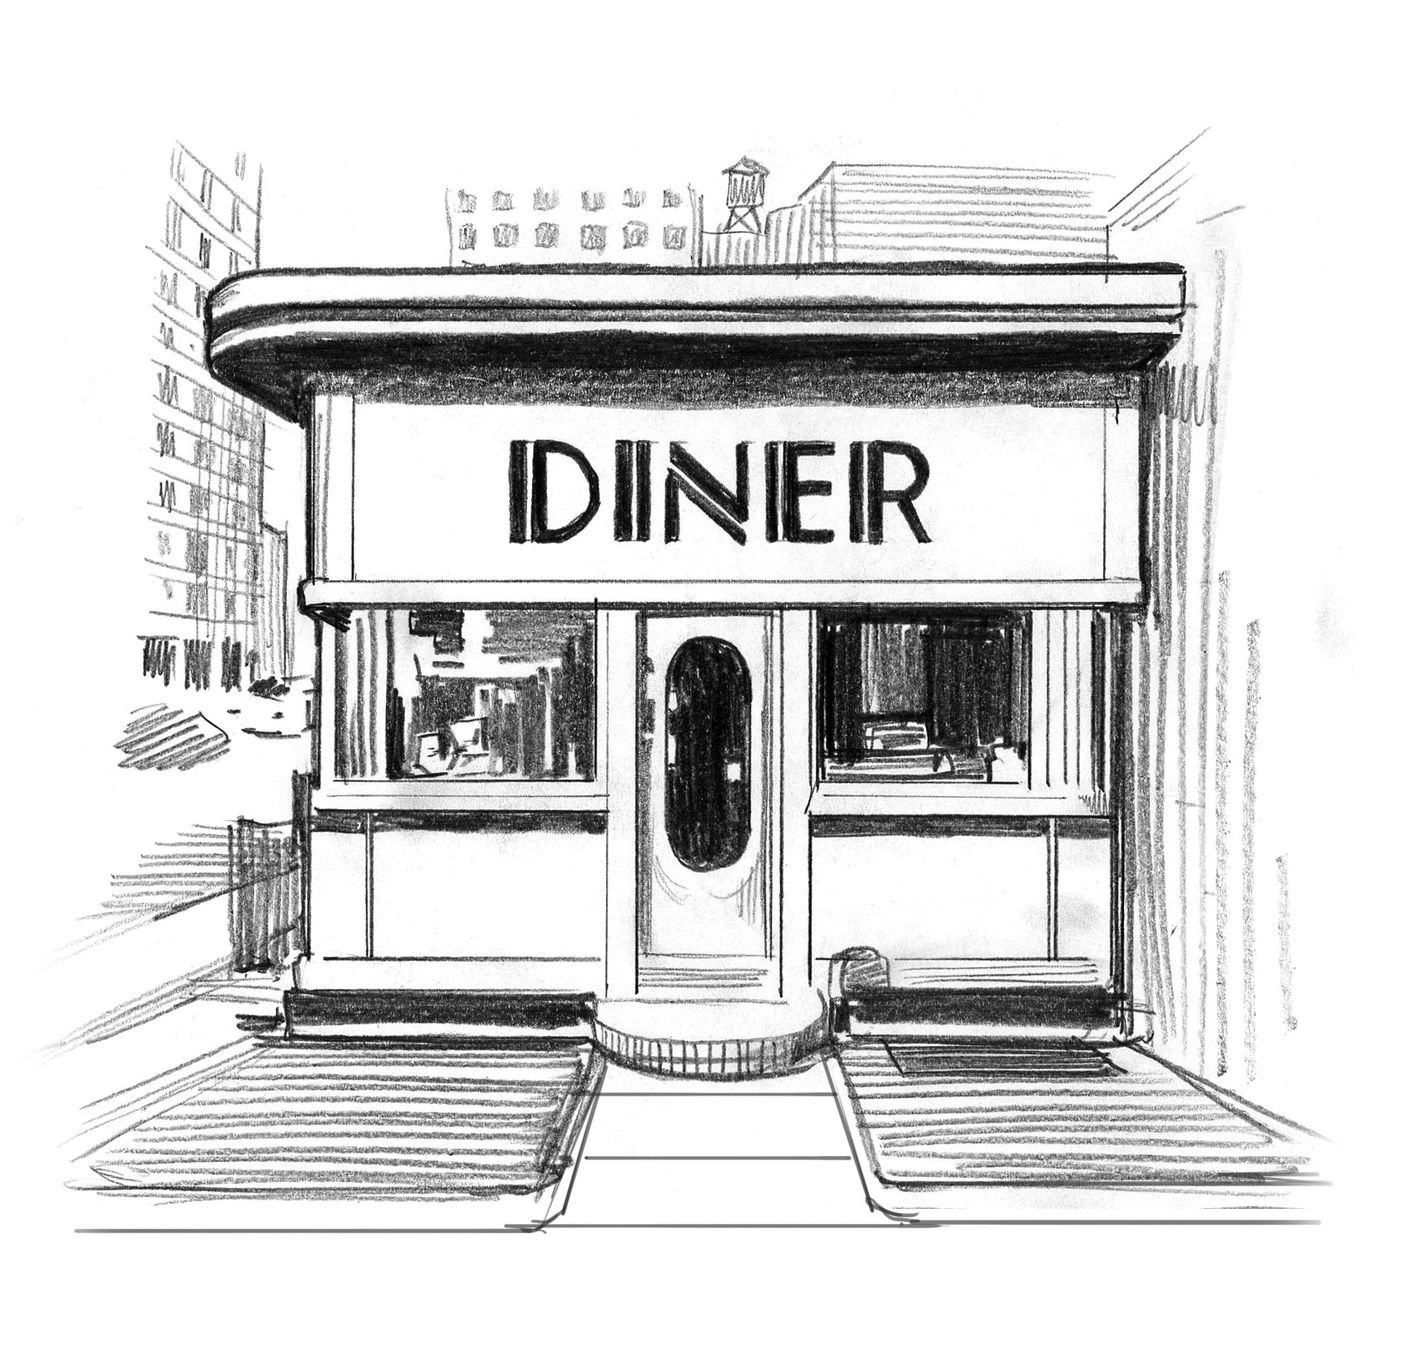 Watching And Lamenting The Death Of The New York Diner